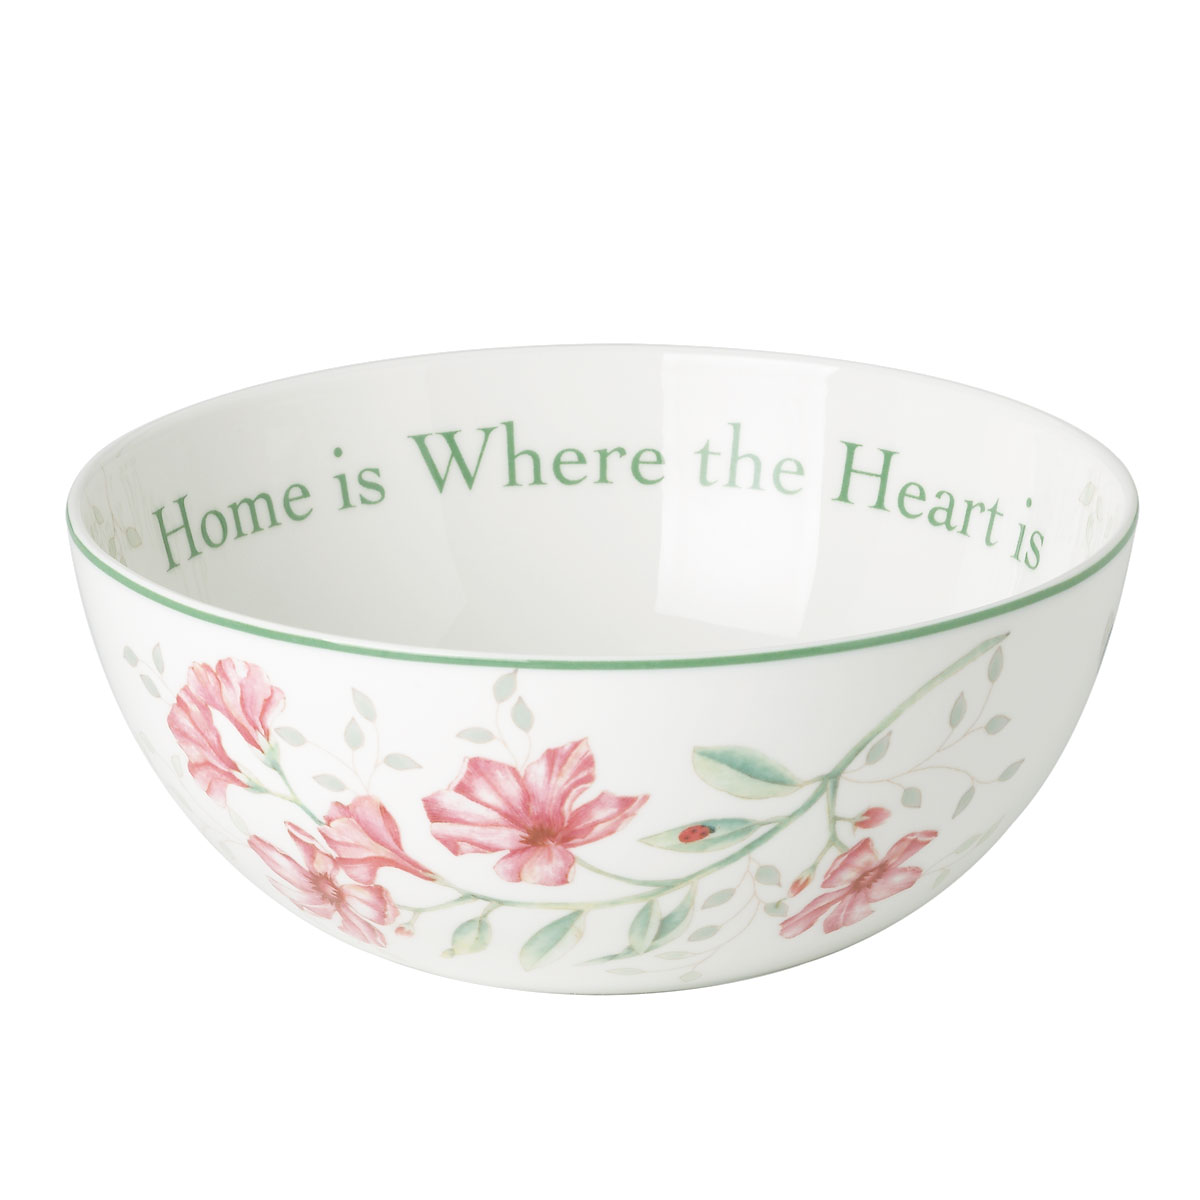 Lenox Butterfly Meadow Dinnerware Sentiment Bowl